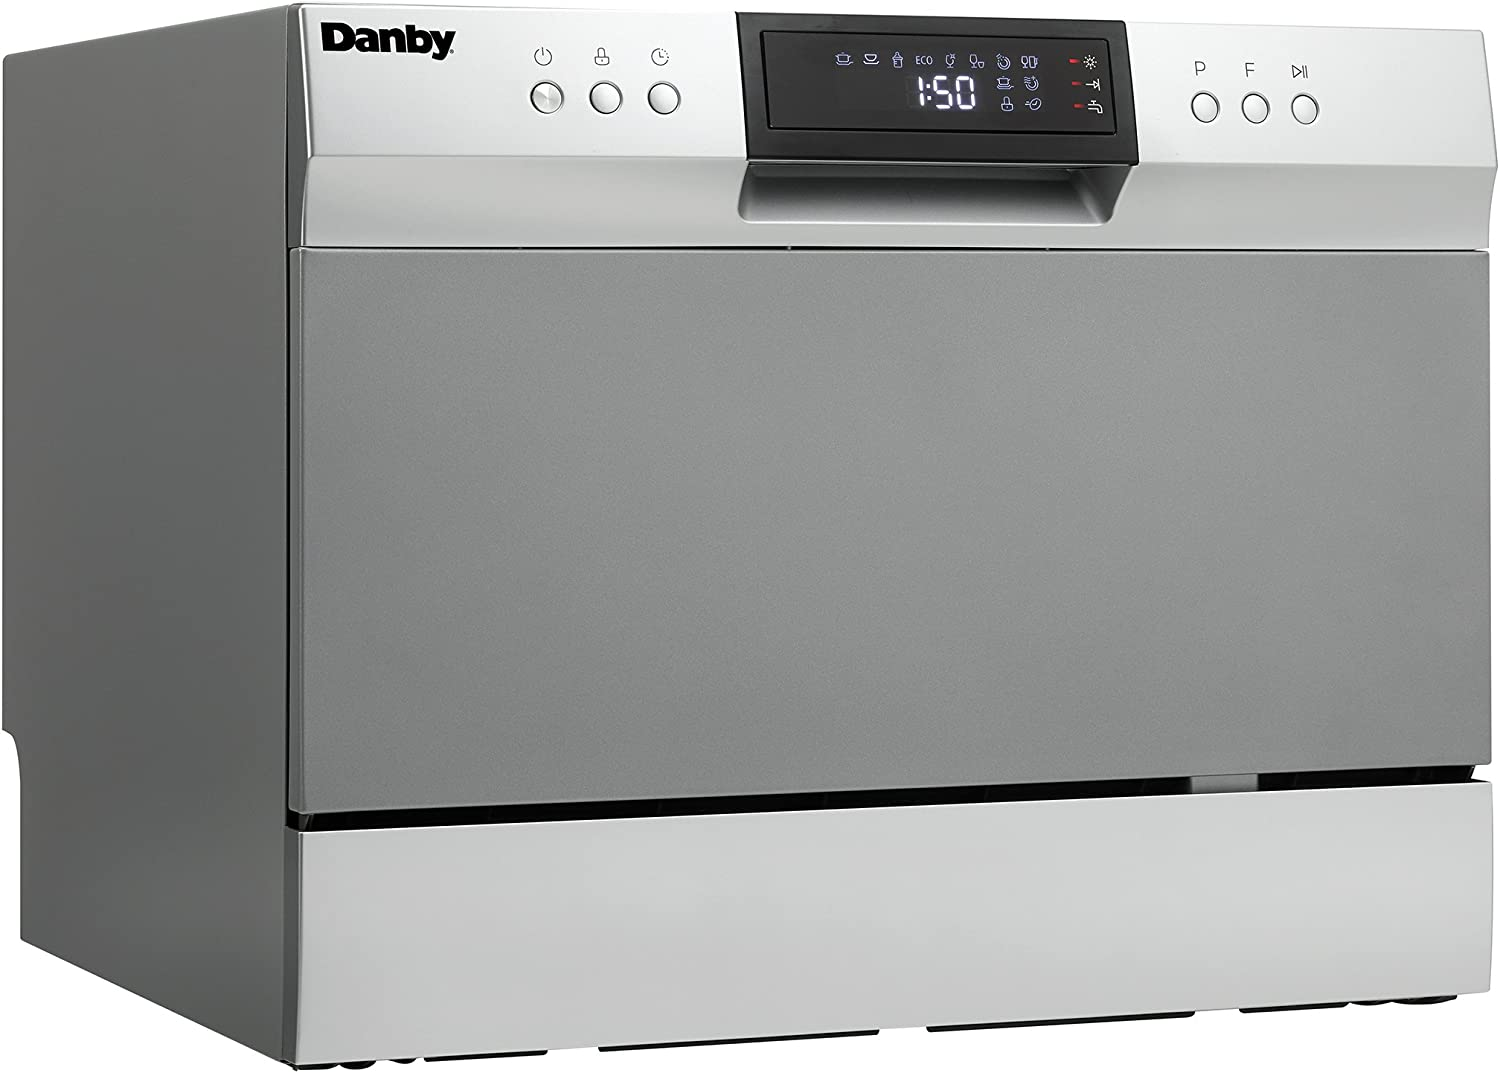 Top 8 Best Dishwashers for A Large Family- Home Improvement (Full Buying Guide-2020) 8